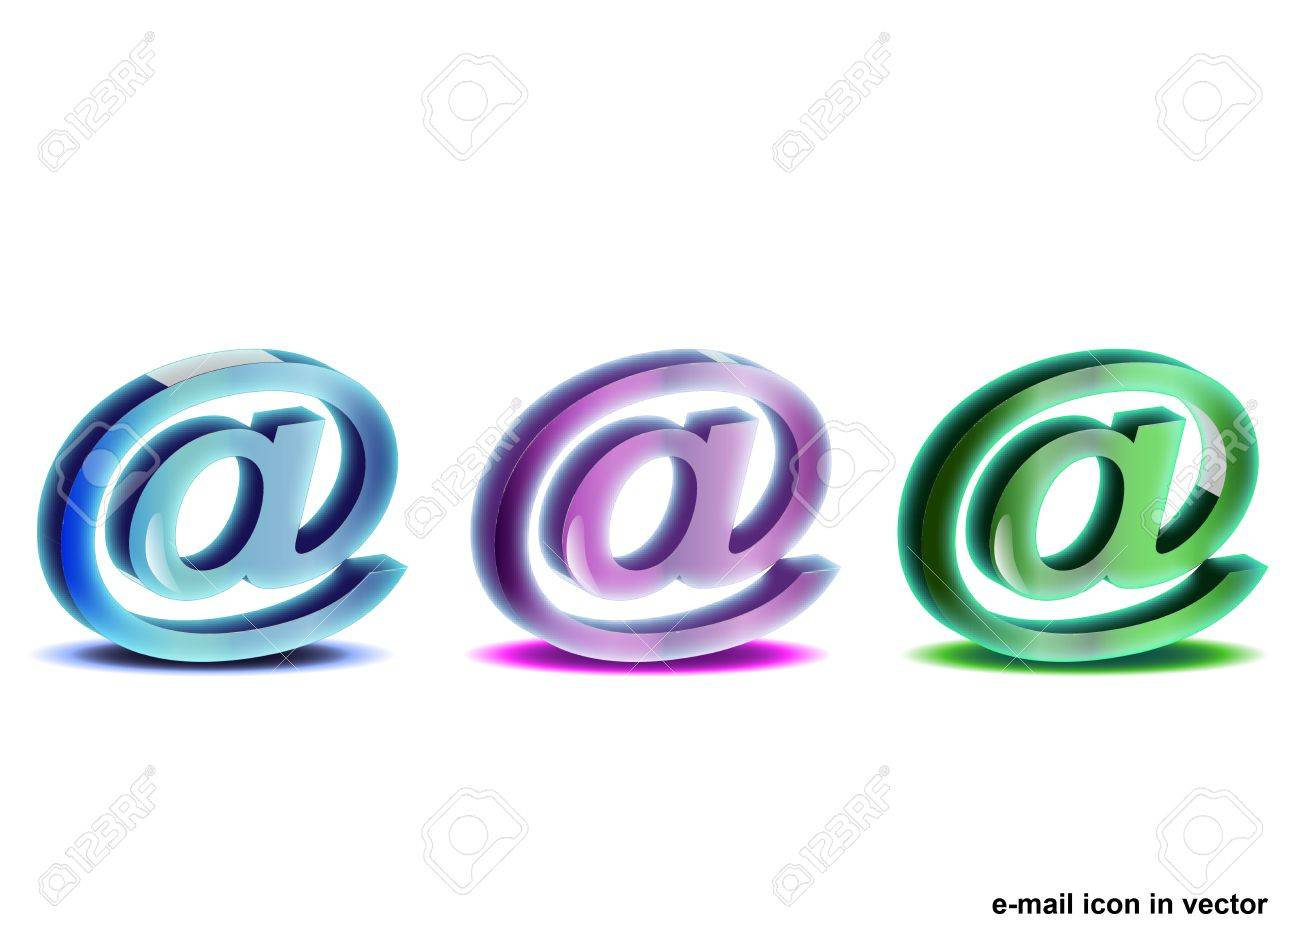 email icon Stock Vector - 10747249